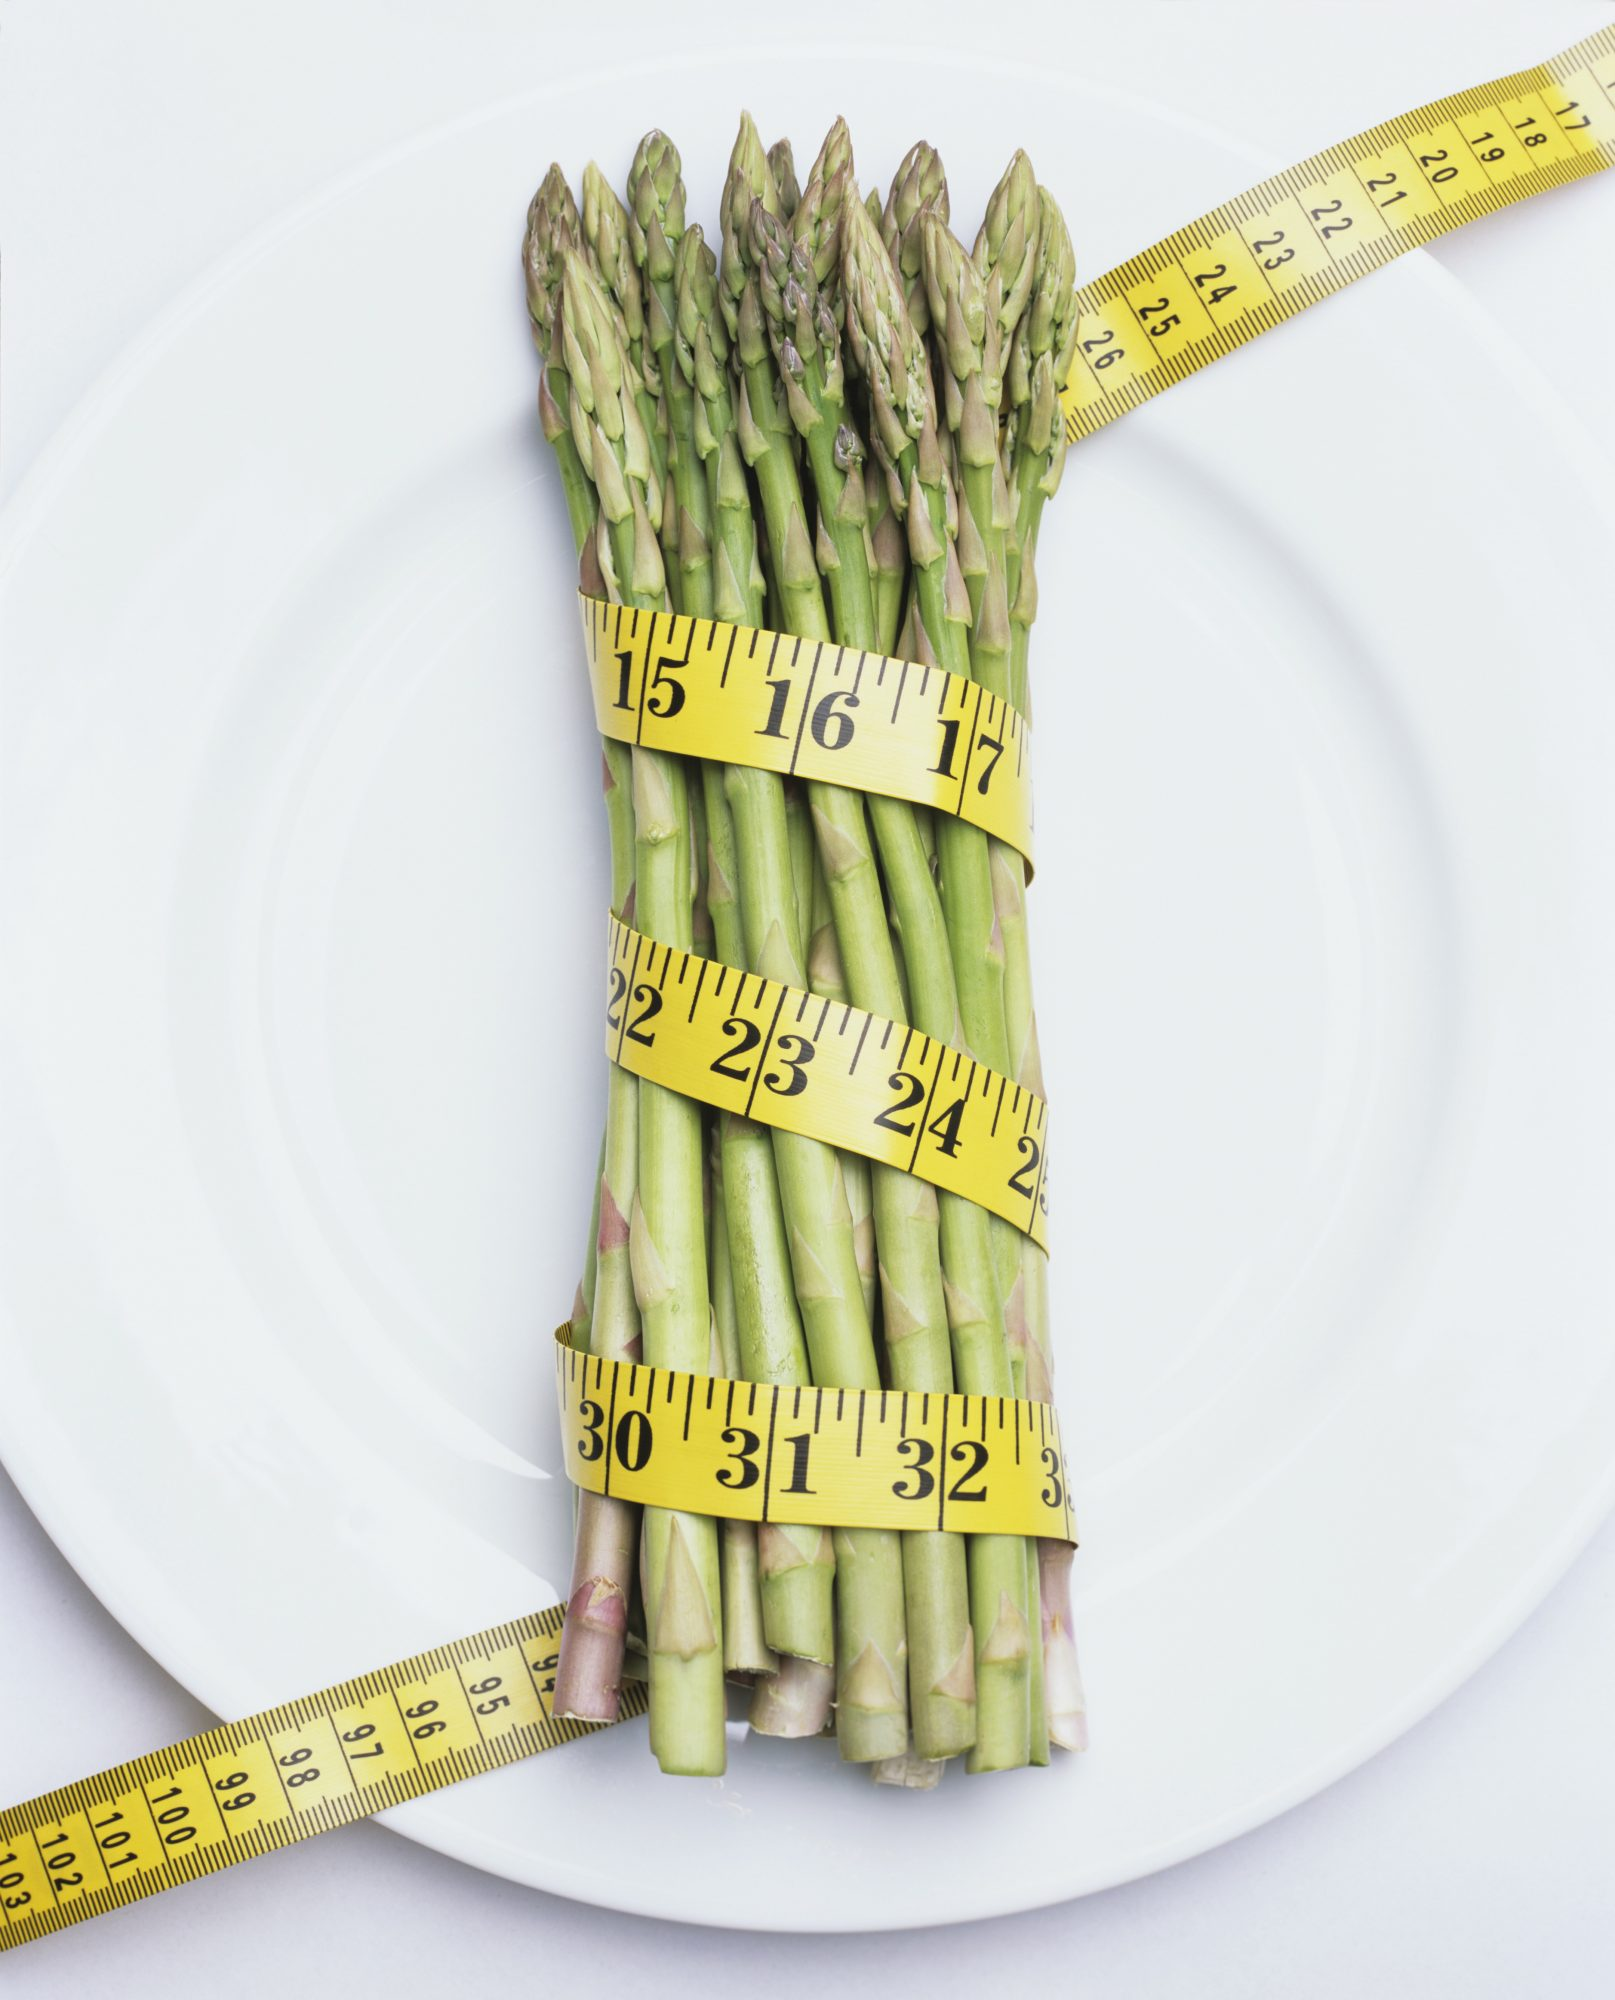 asparagus-weight-loss